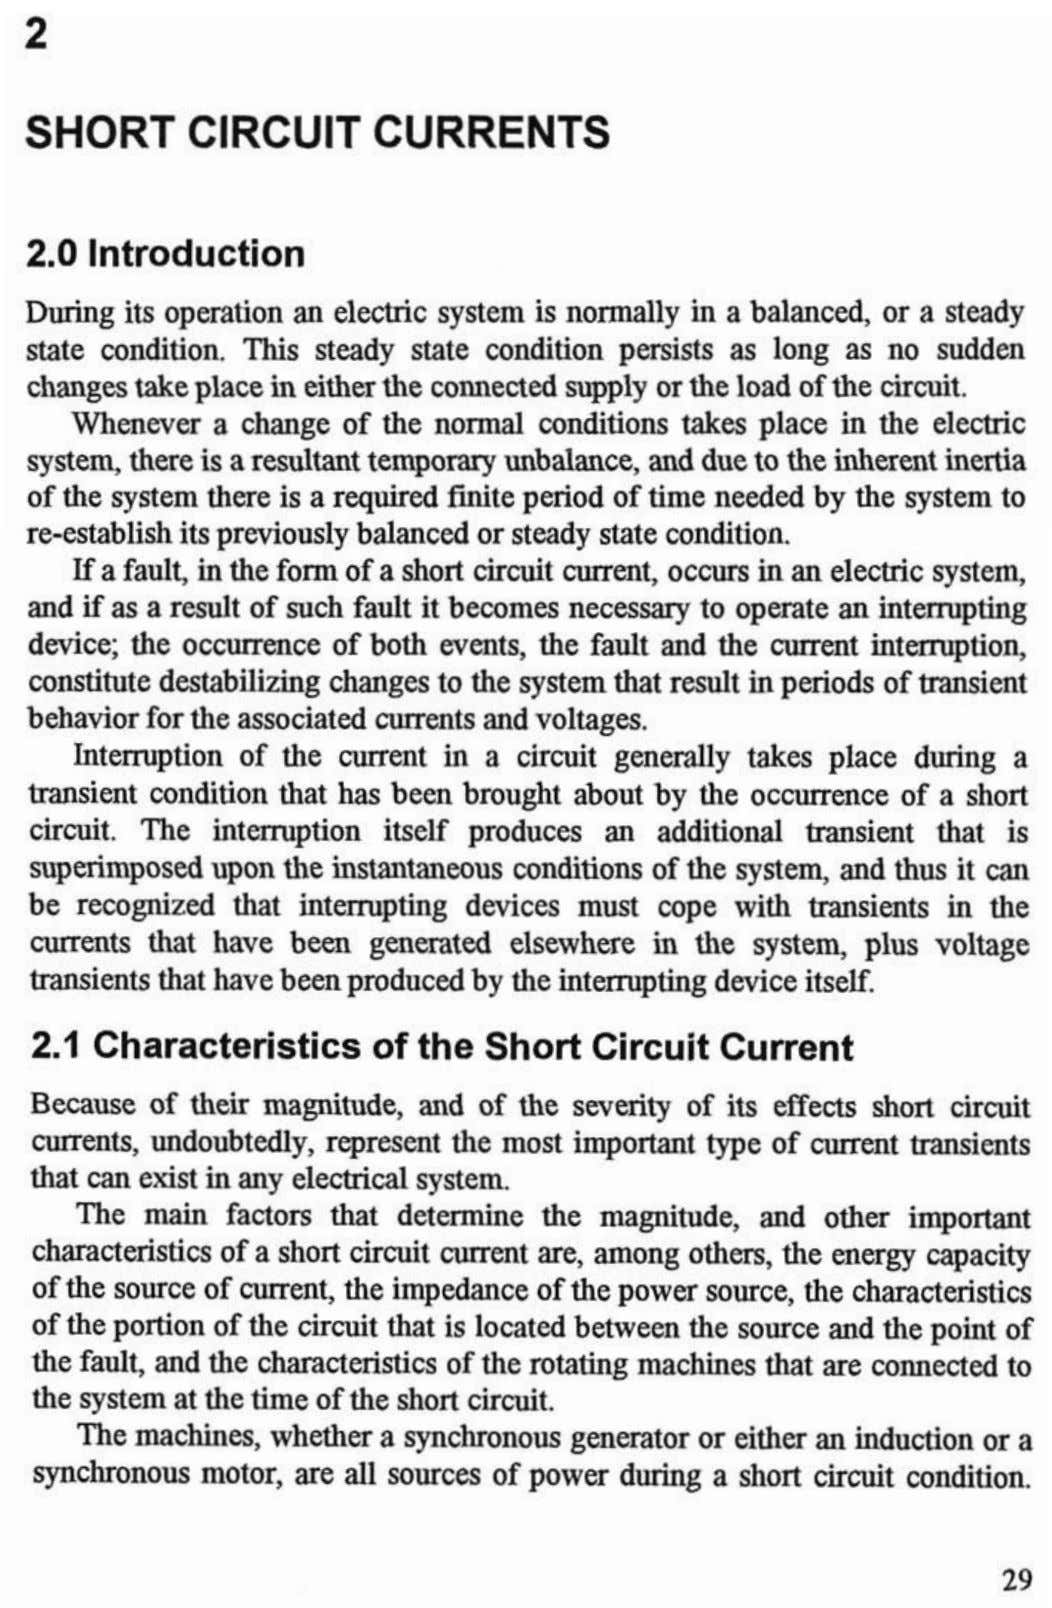 SHORT CIRCUIT CURRENTS 2.0 Introduction 2.1 Characteristics of the Short Circuit Current